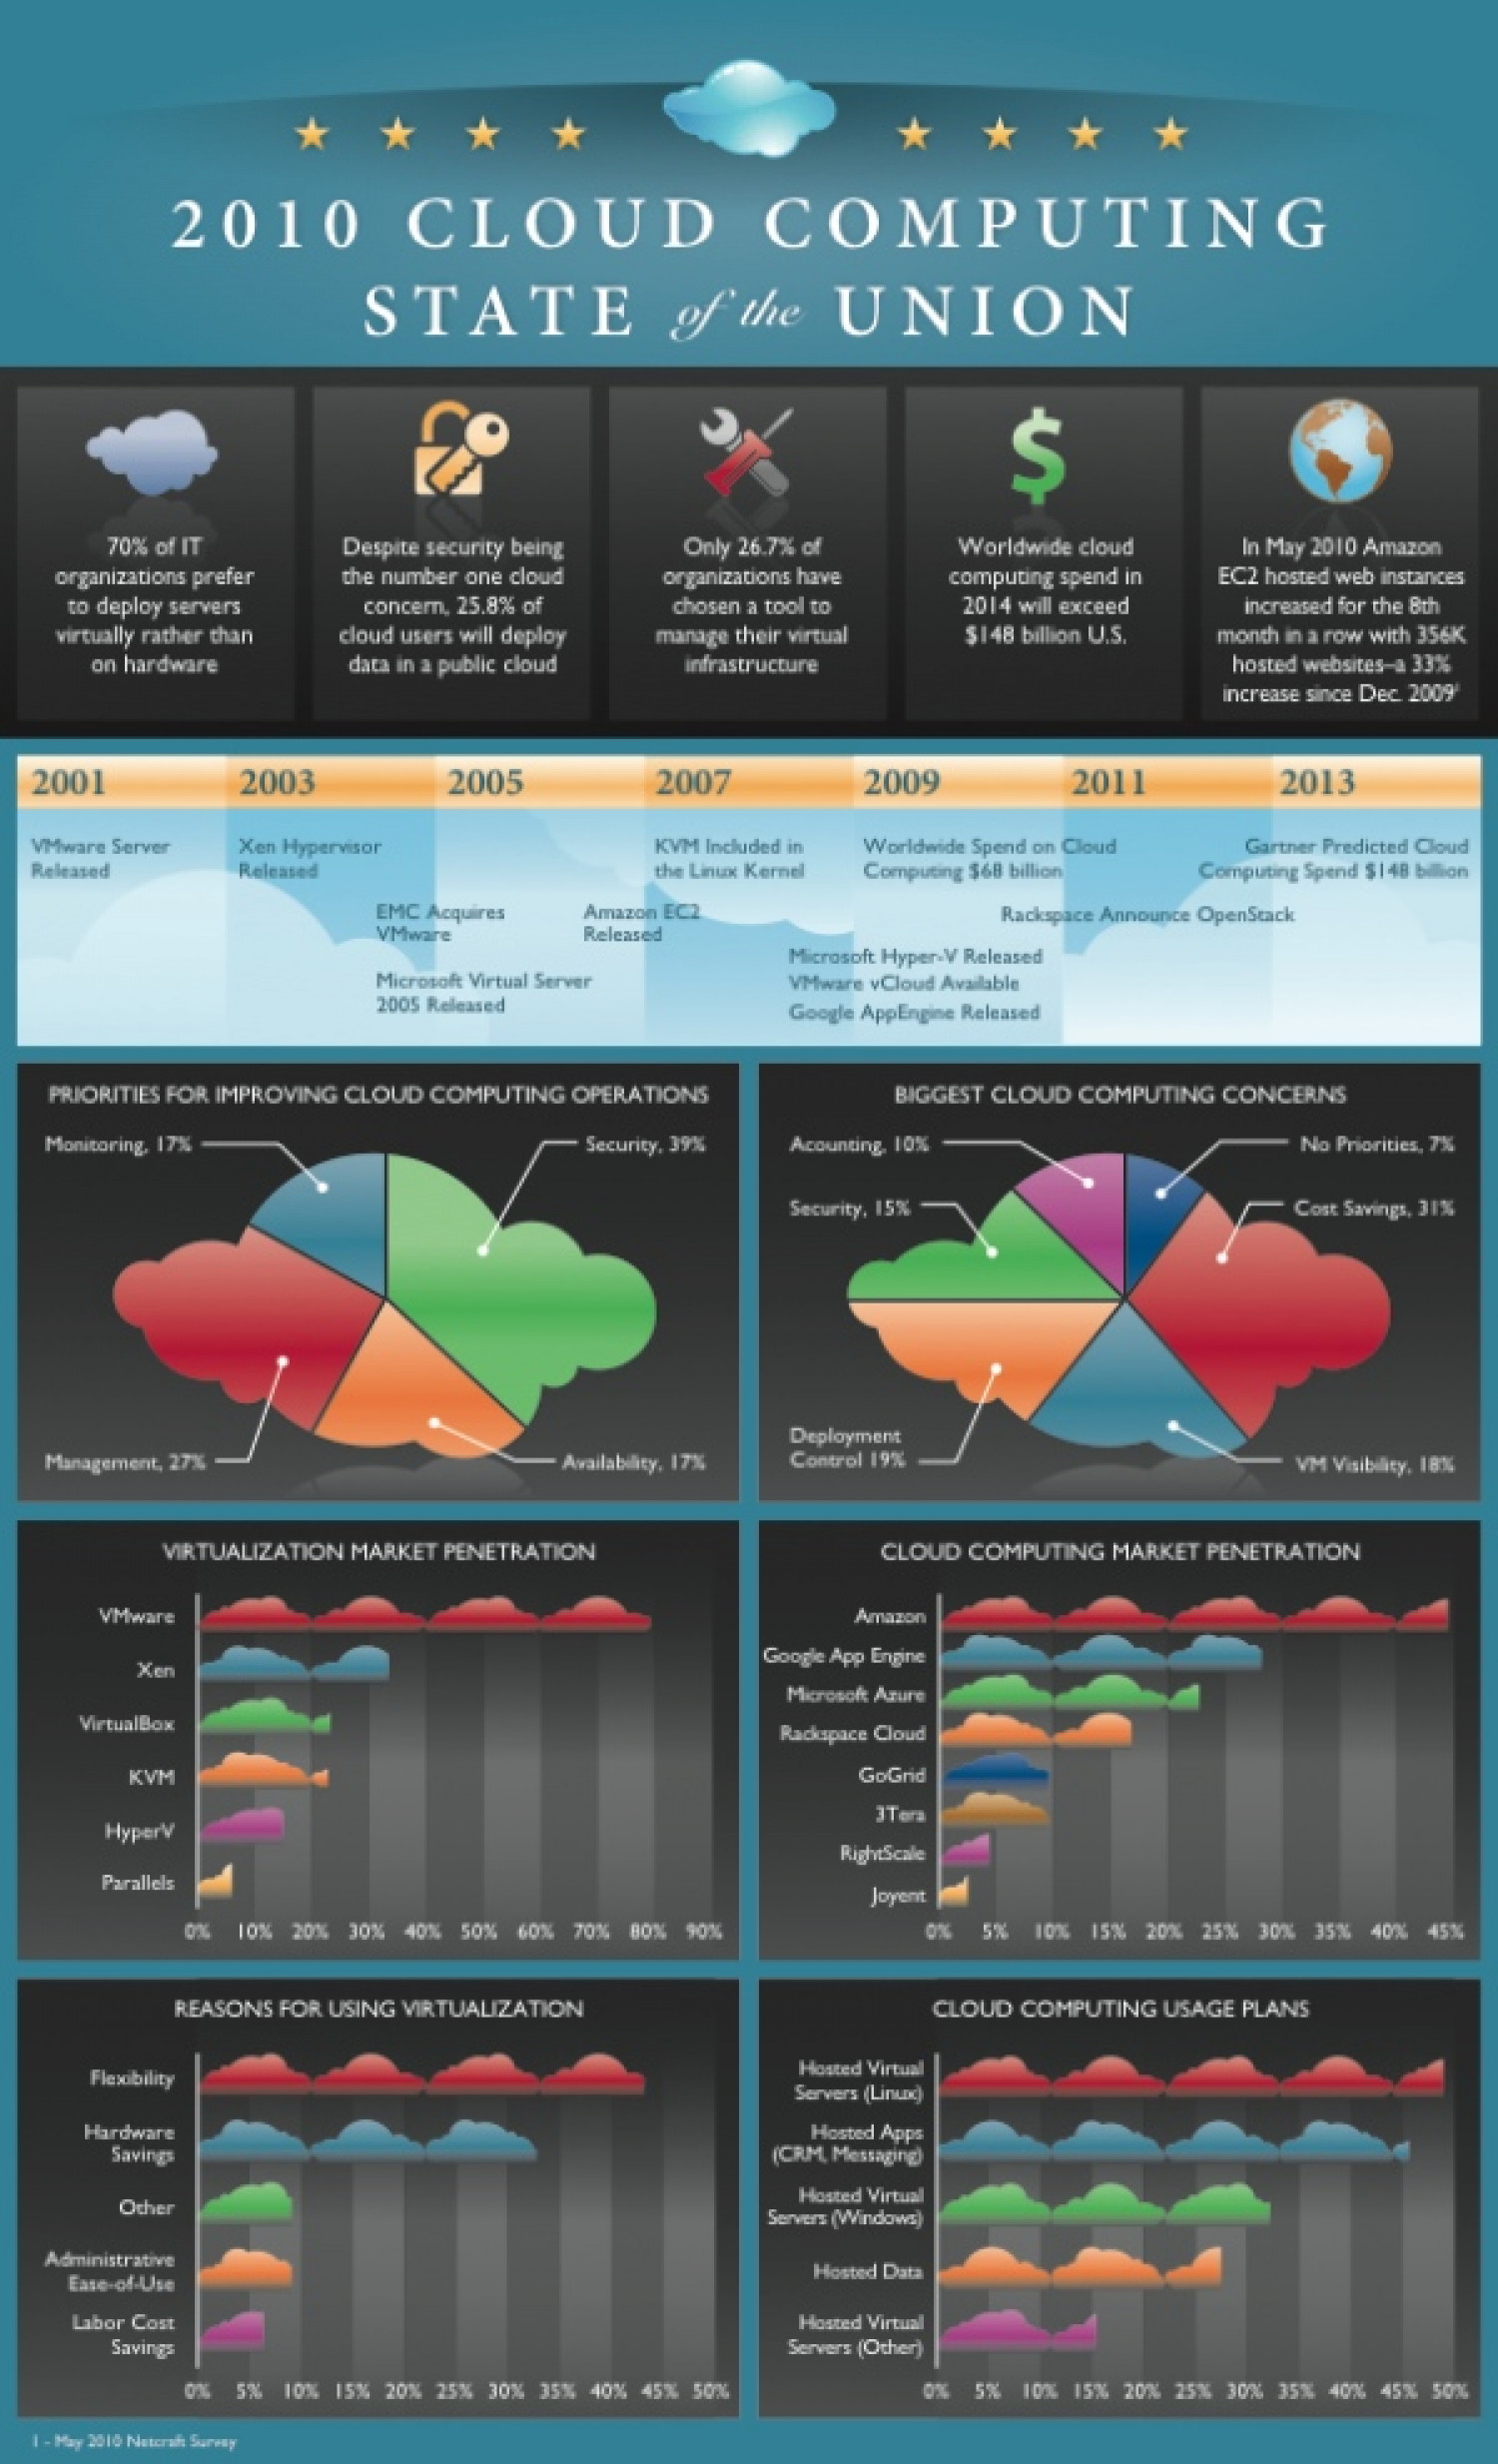 2010 Cloud Computing State of the Union Infographic